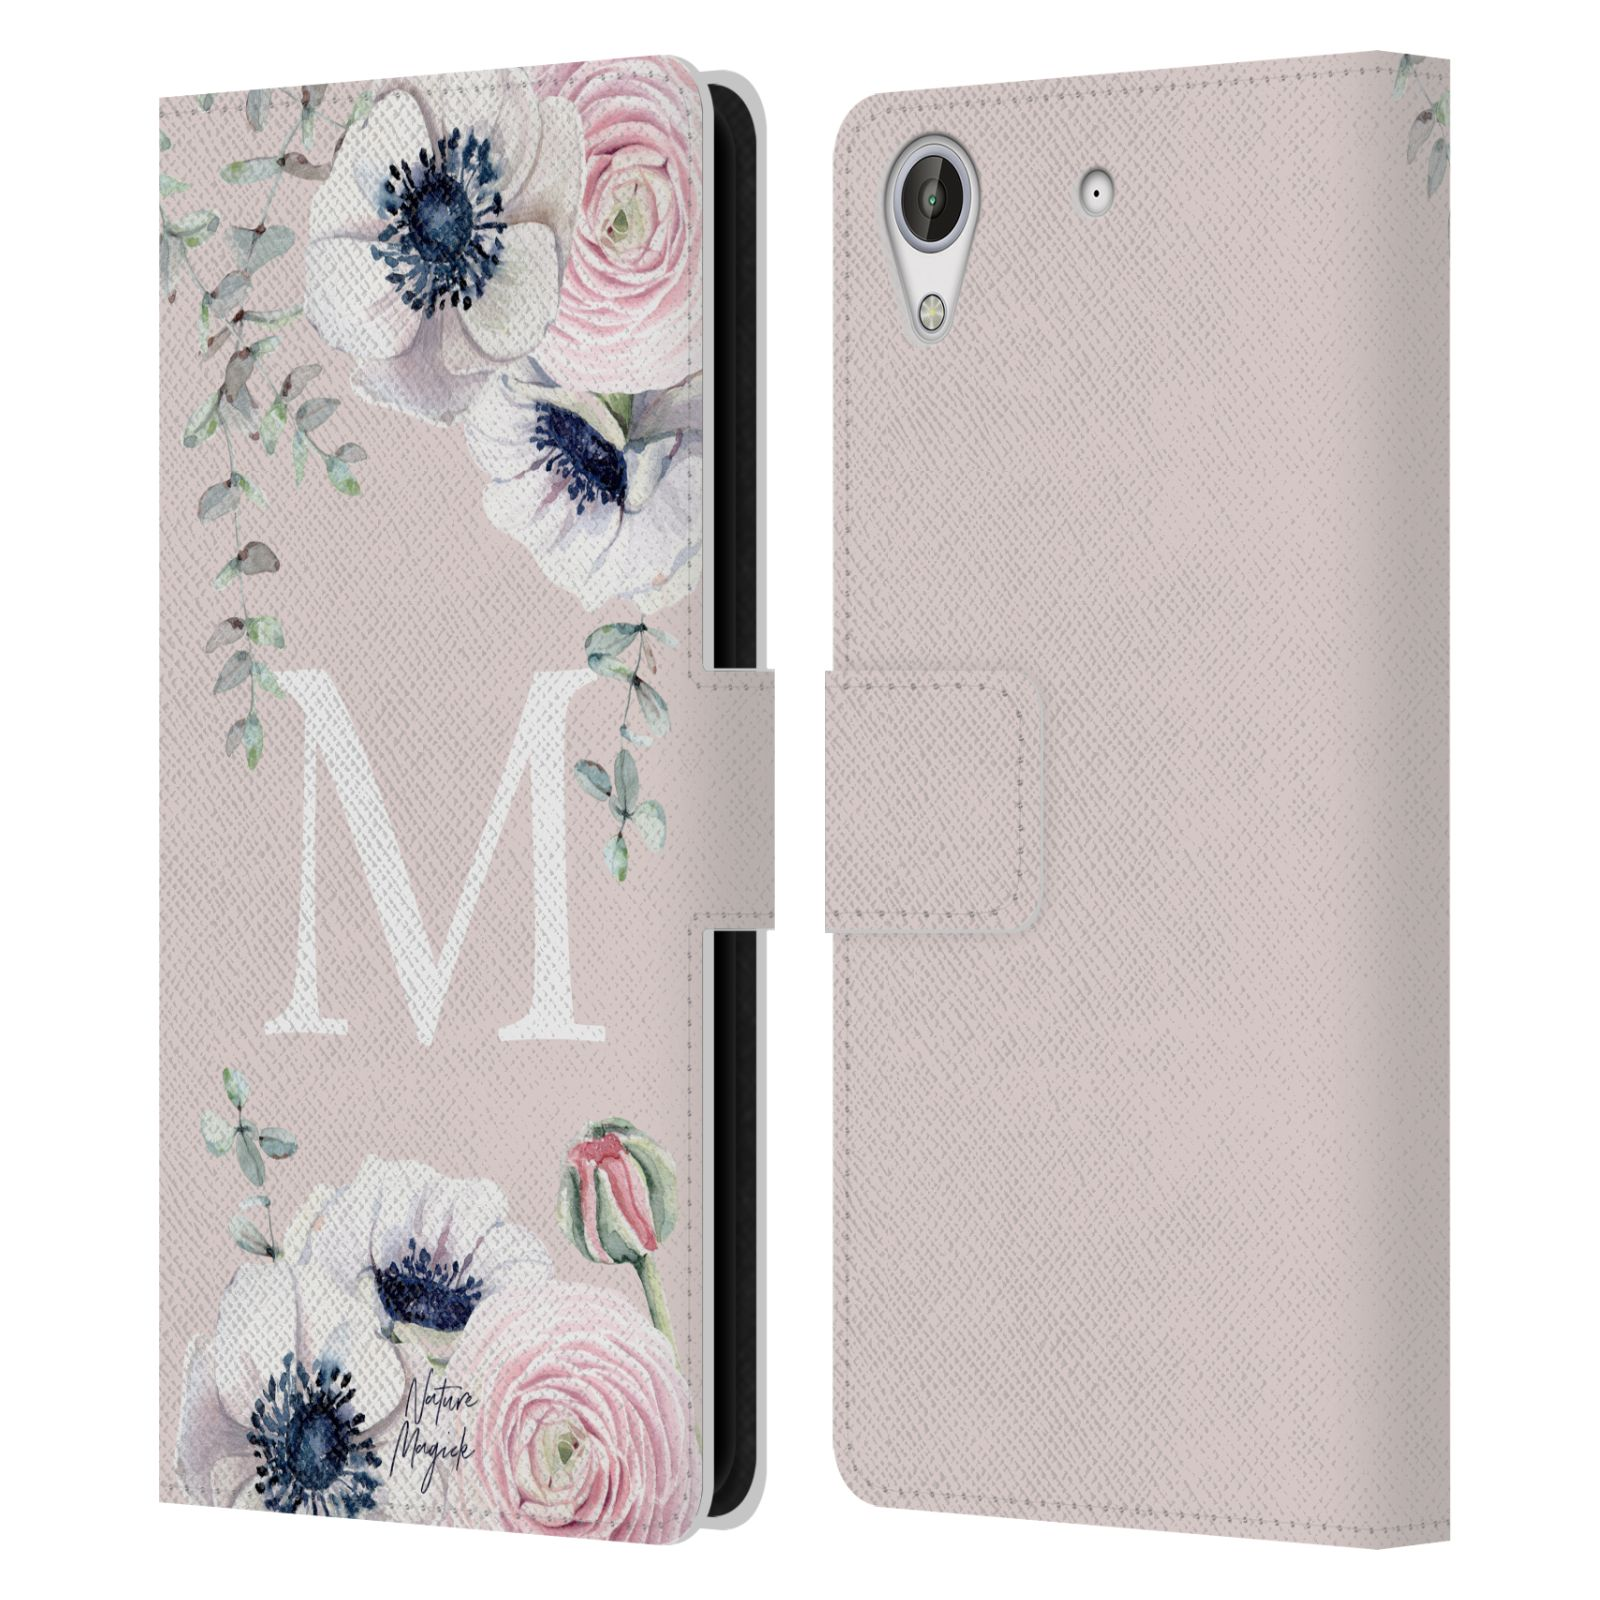 NATURE-MAGICK-FLORAL-MONOGRAM-PINK-FLOWERS-LEATHER-BOOK-CASE-FOR-HTC-PHONES-2